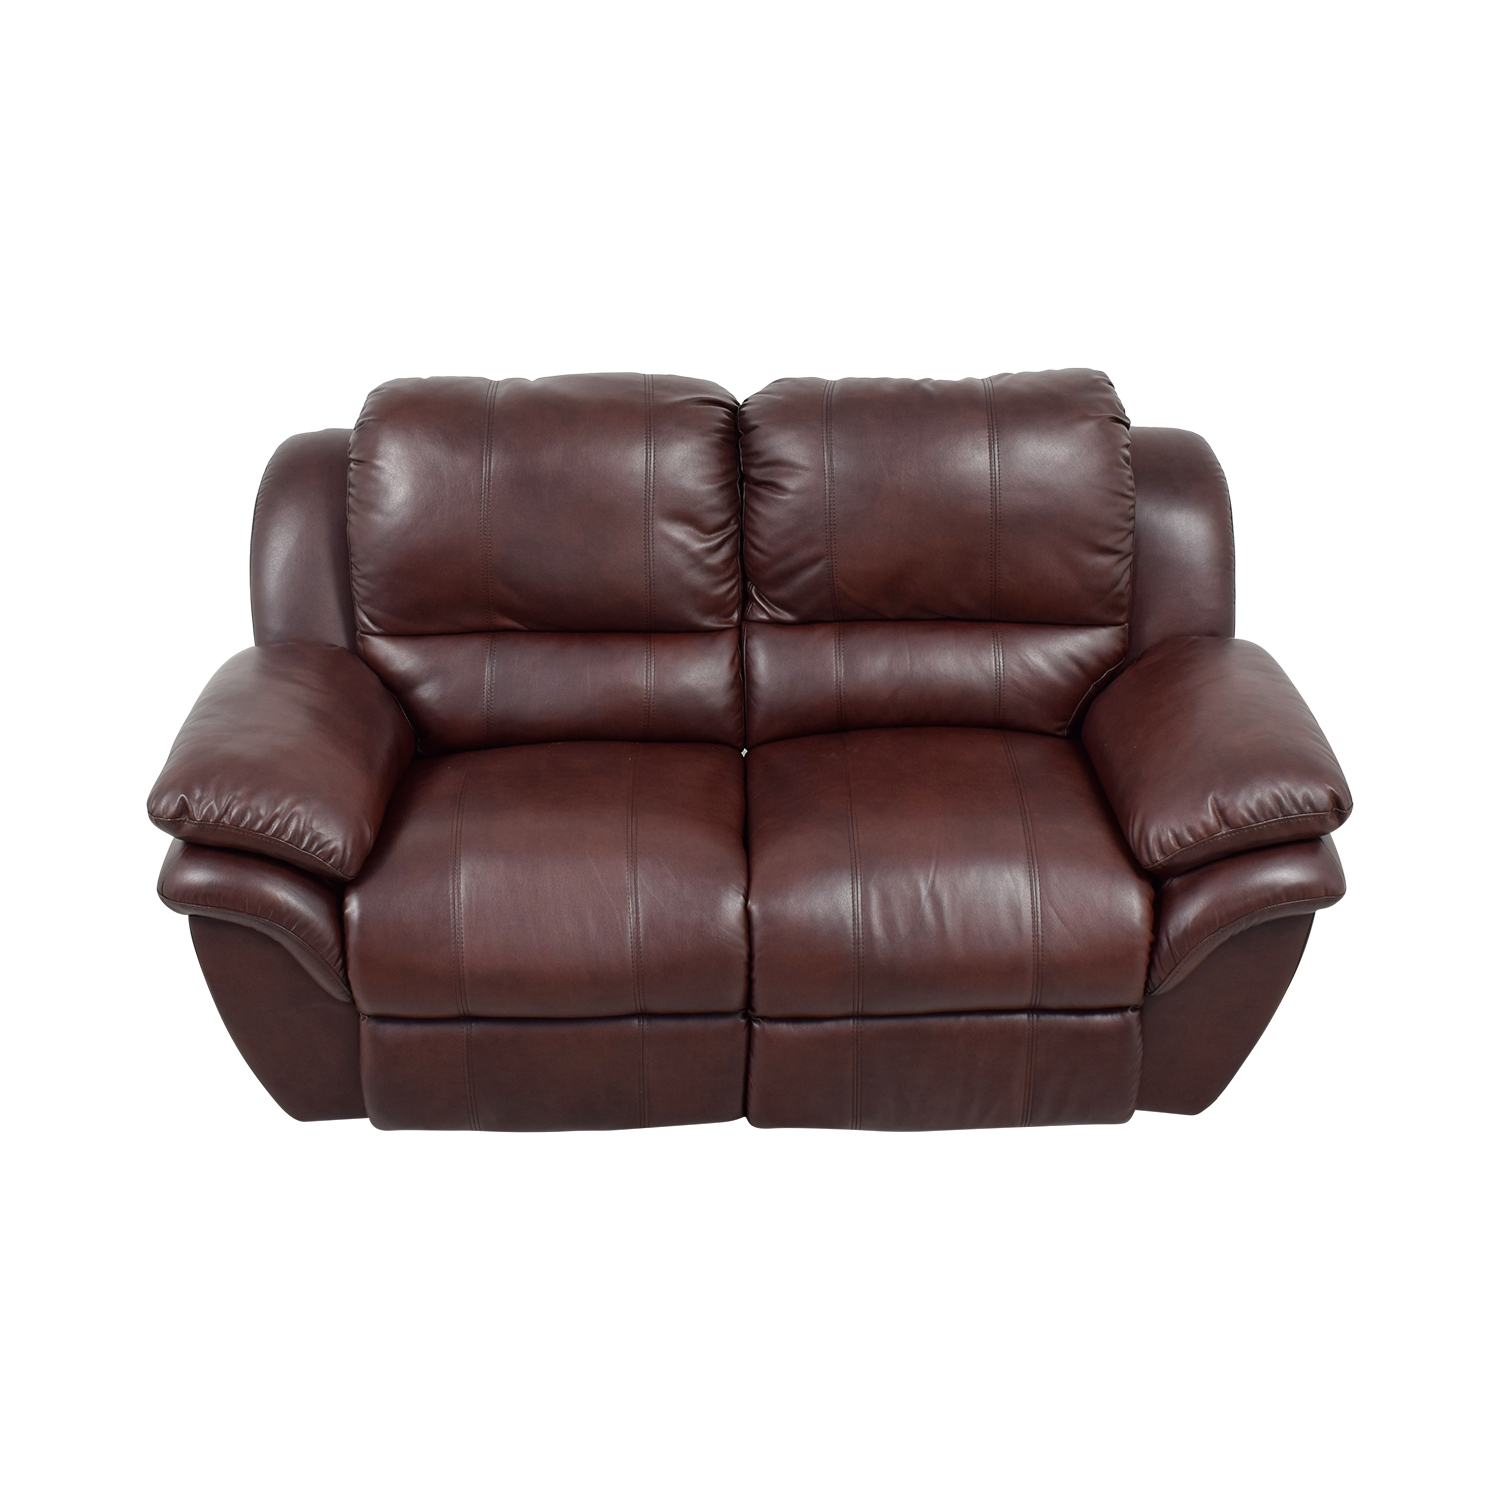 Bob's Furniture Bob's Furniture Brown Leather Recliner discount